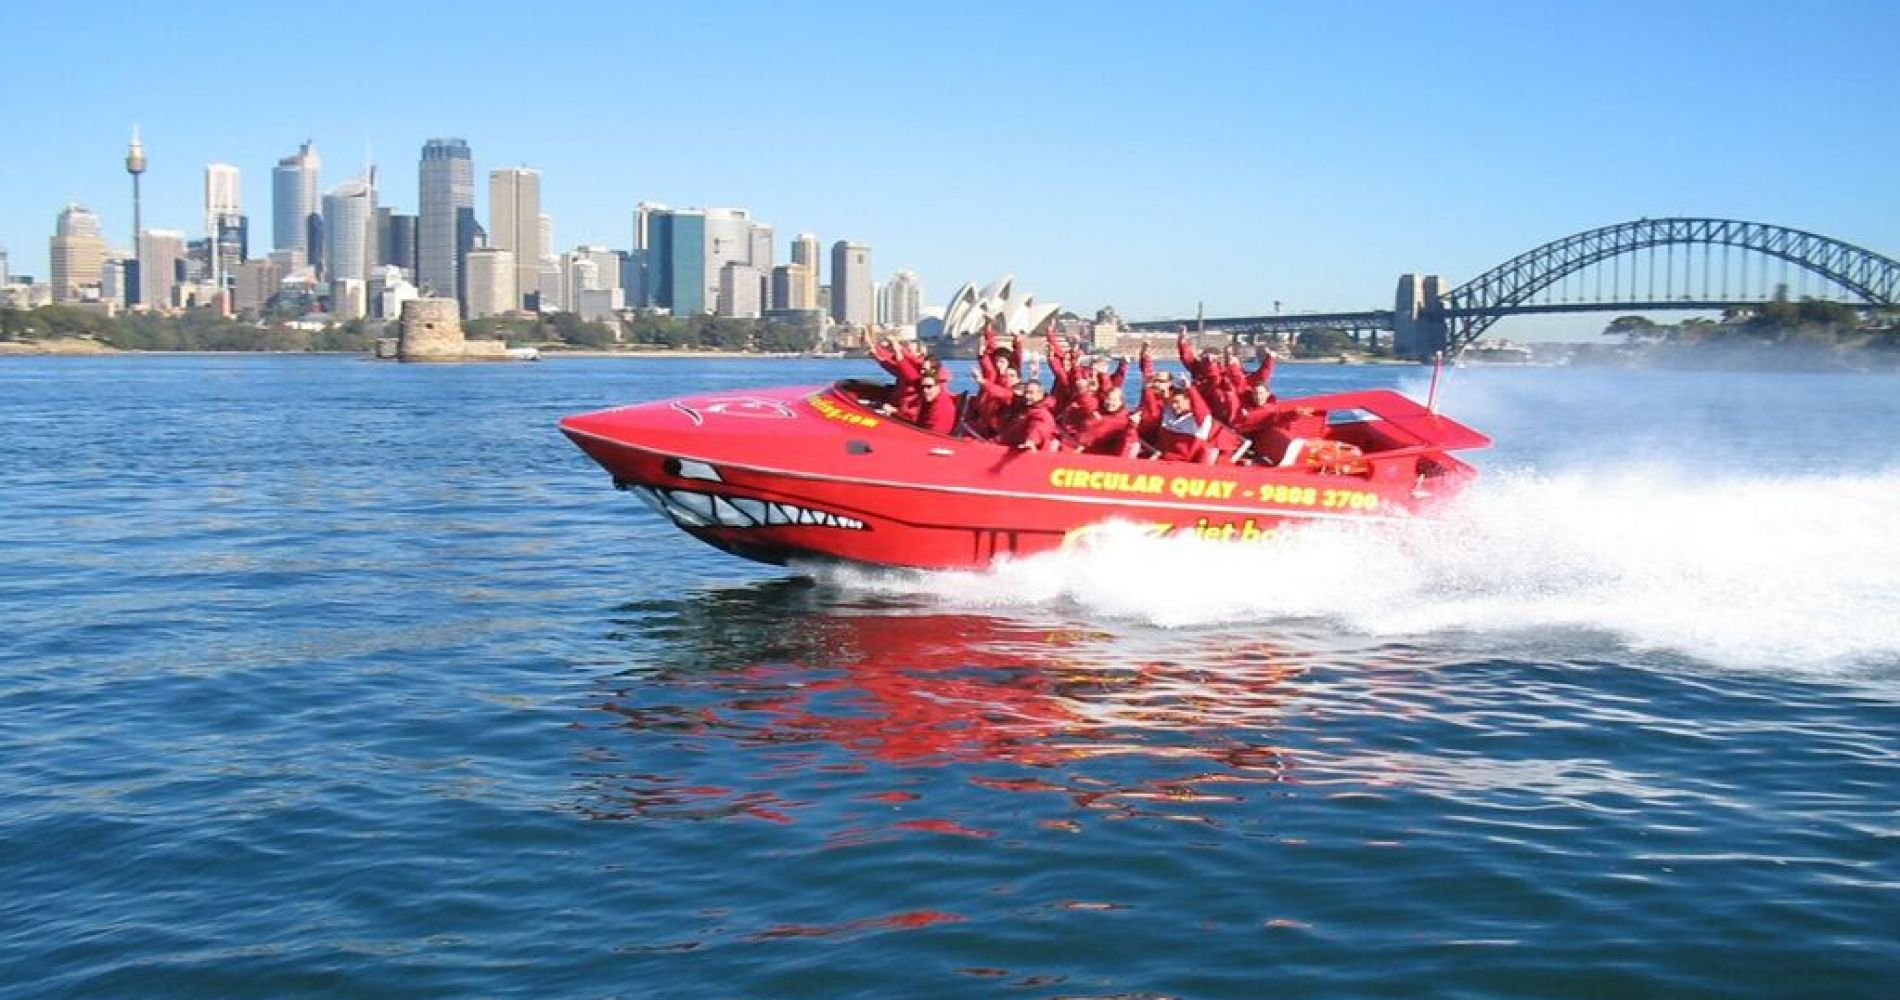 Jet Boat Thrill Ride Sydney Harbour Tinggly Experience Gifts